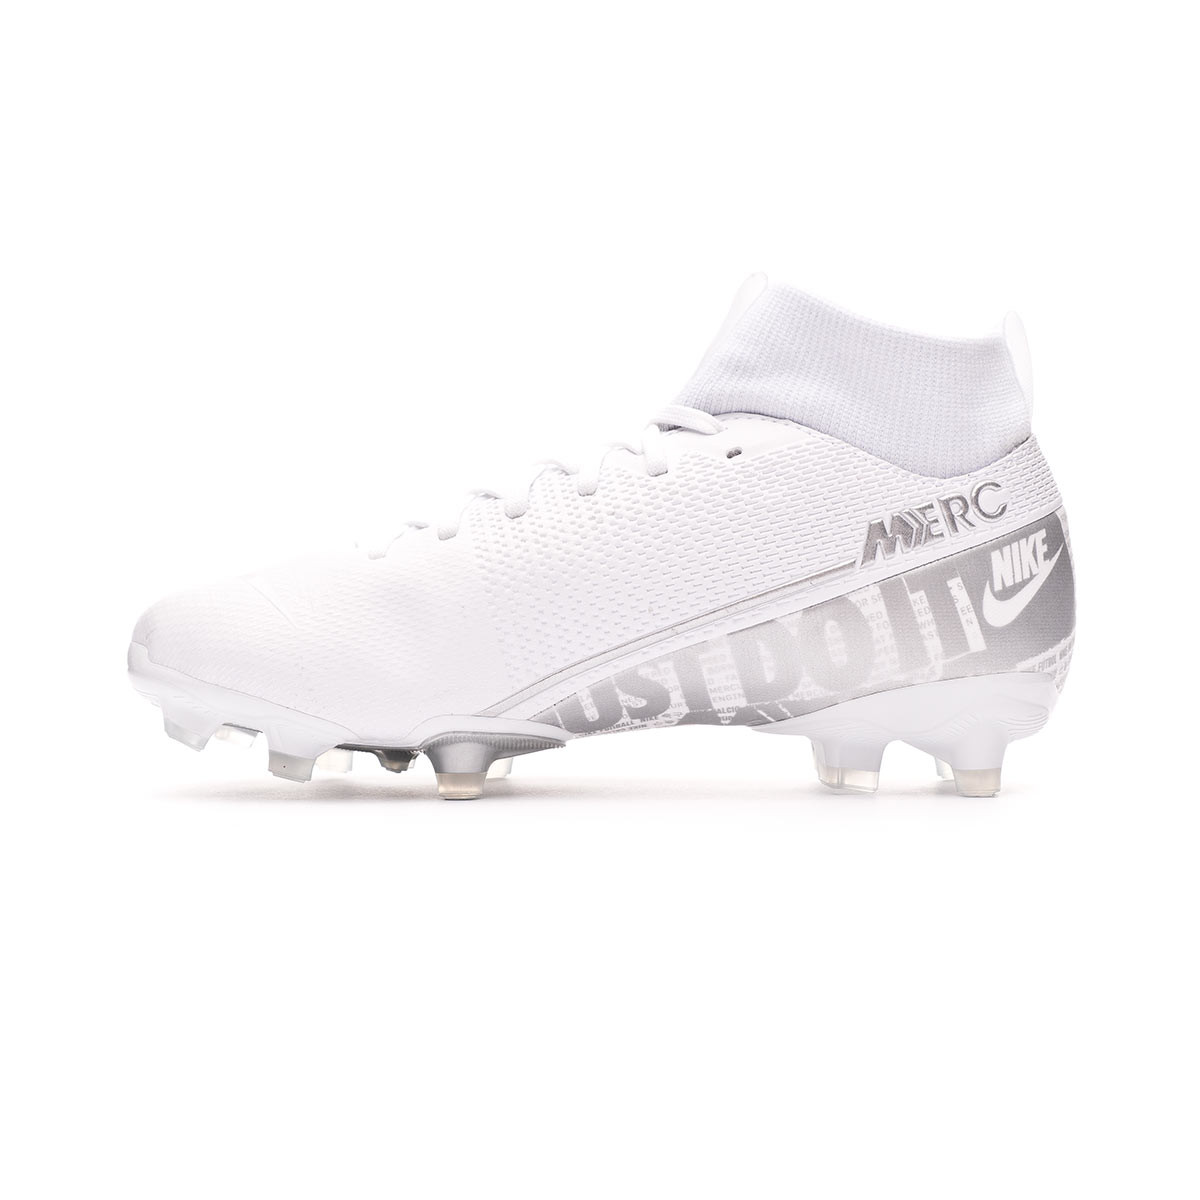 Nike Kids Mercurial Superfly VII Academy FGMG Football Boots